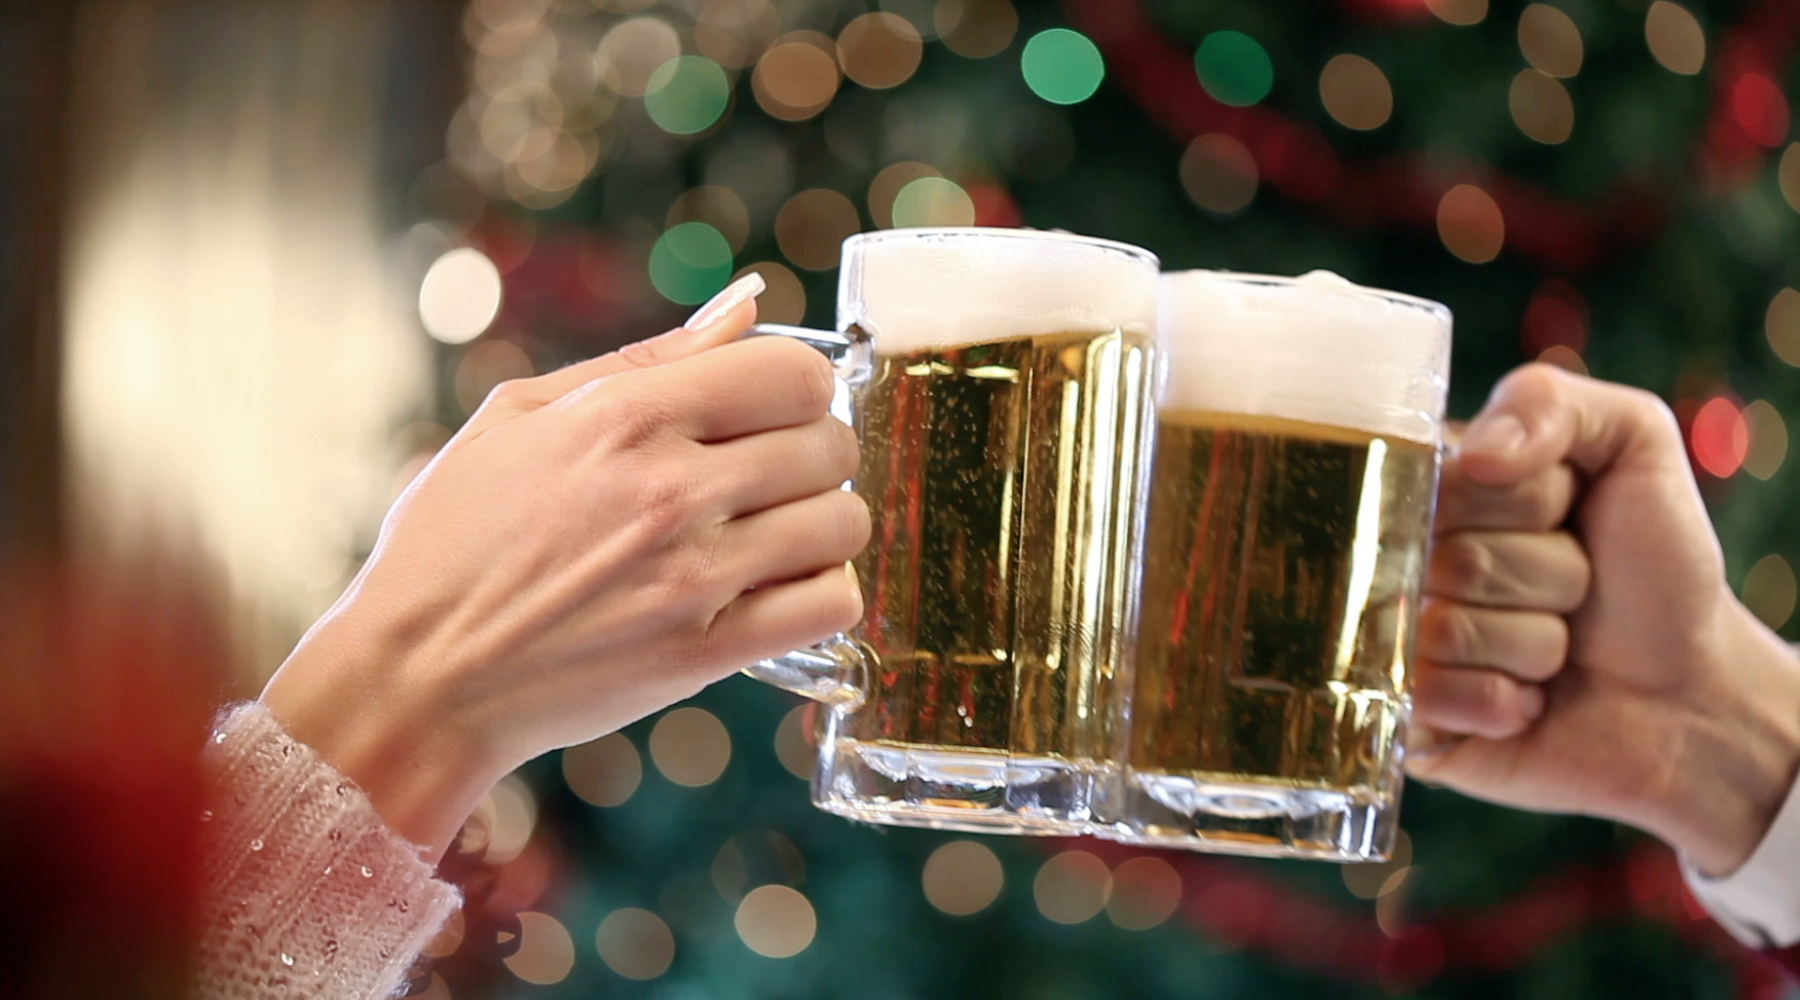 What Beer You Should Drink According to Your Favourite Christmas Song